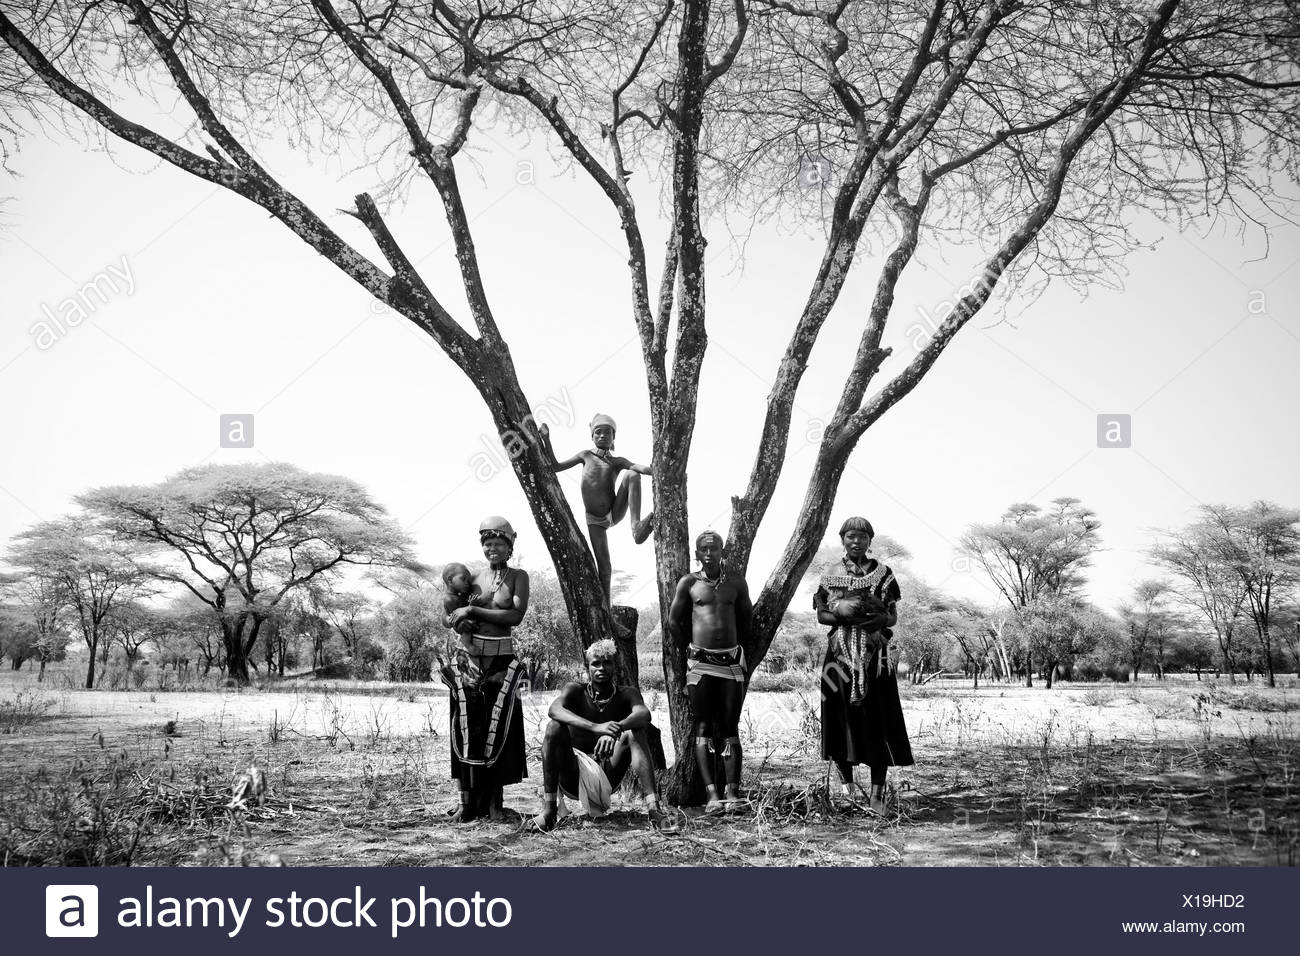 Portrait of a group of native people dressed in primitive, traditional attire posed beneath a wide-branched tree in desert setti Stock Photo